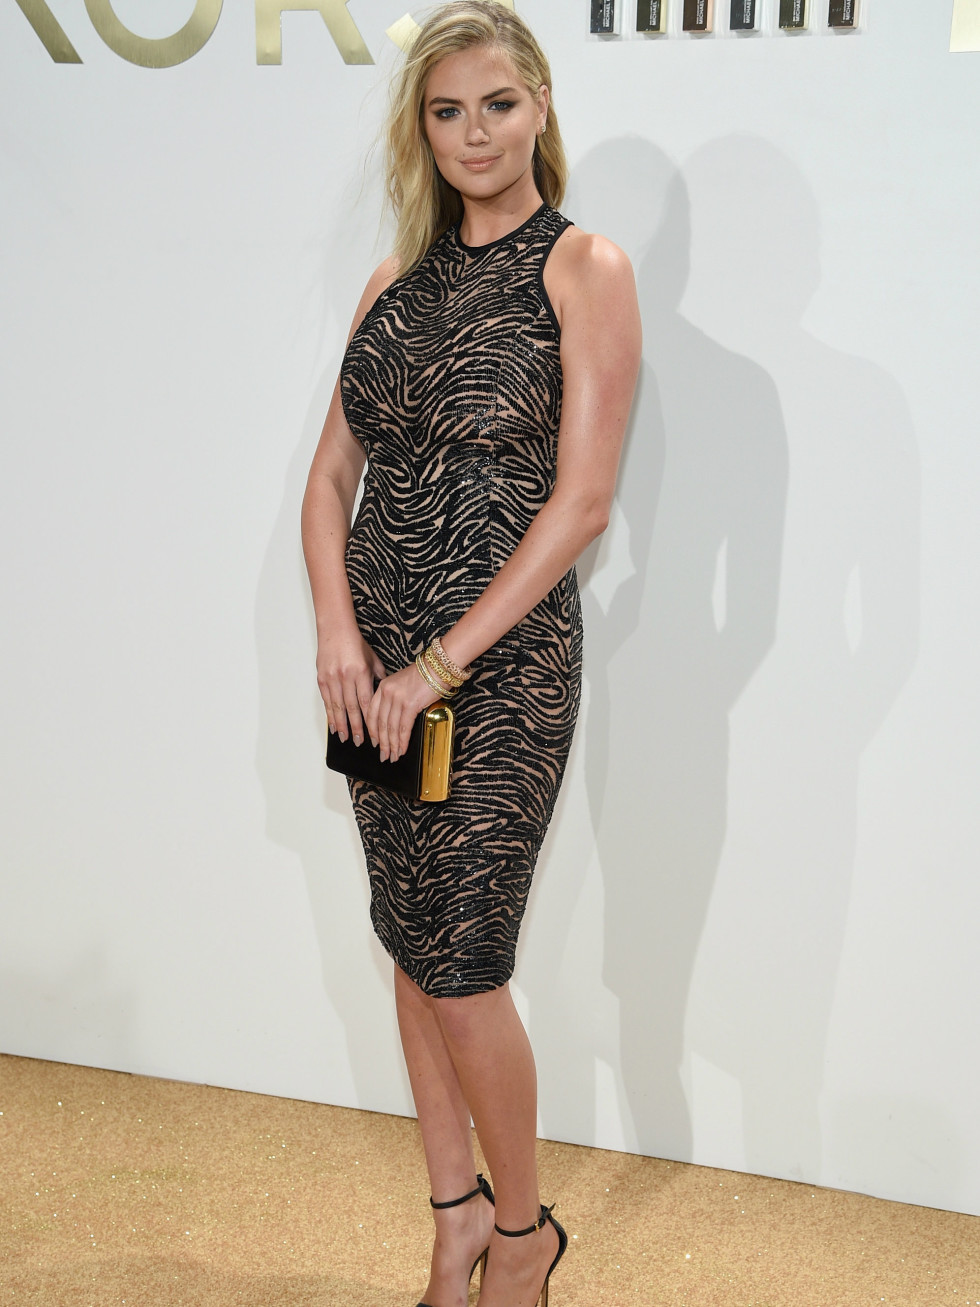 Kate Upton at launch of Michael Kors Gold fragrance